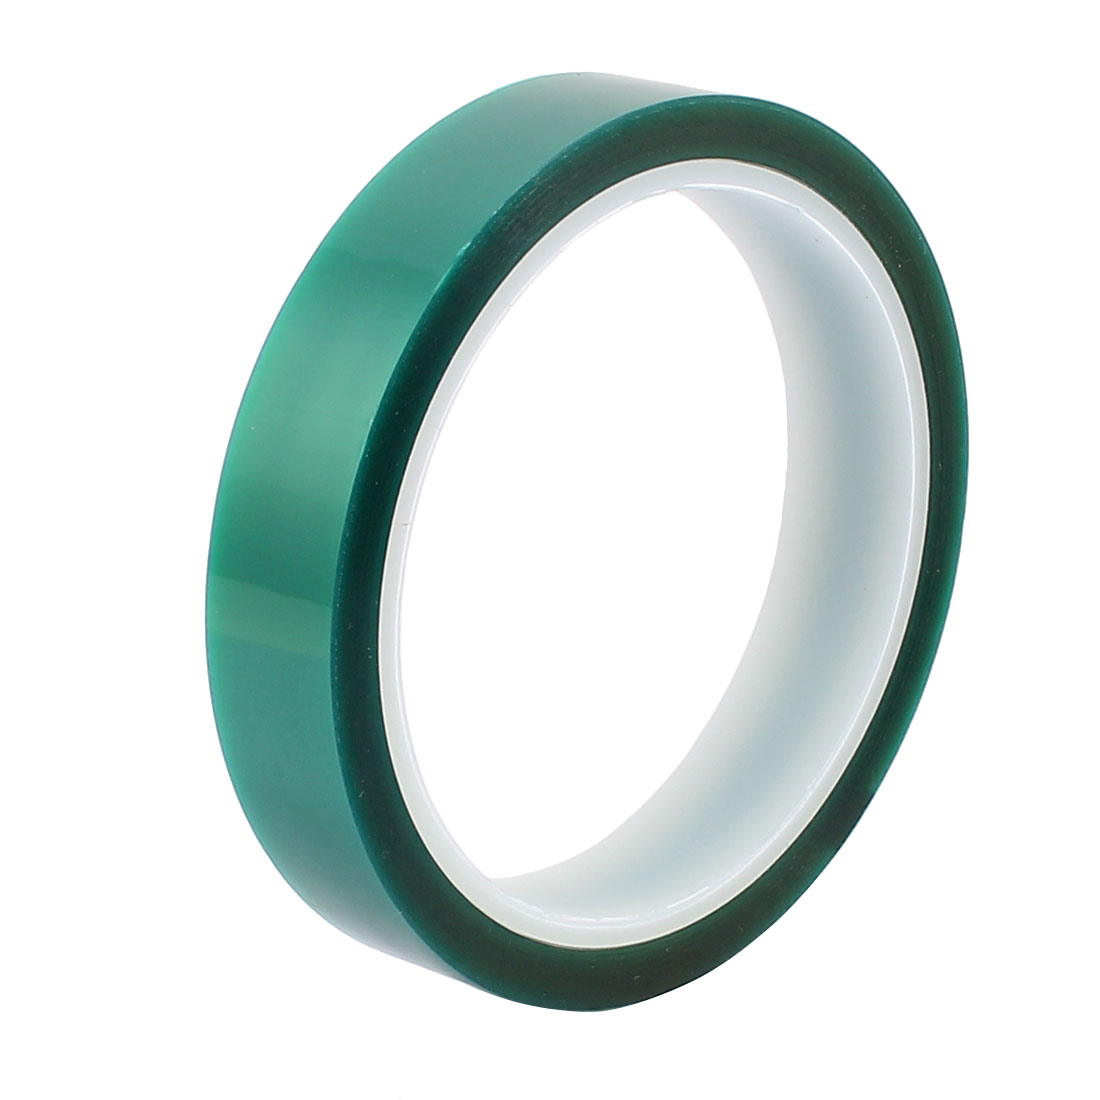 18mm Width 33M Length Green PET High Temperature Heat Resistant PCB Solder Tape